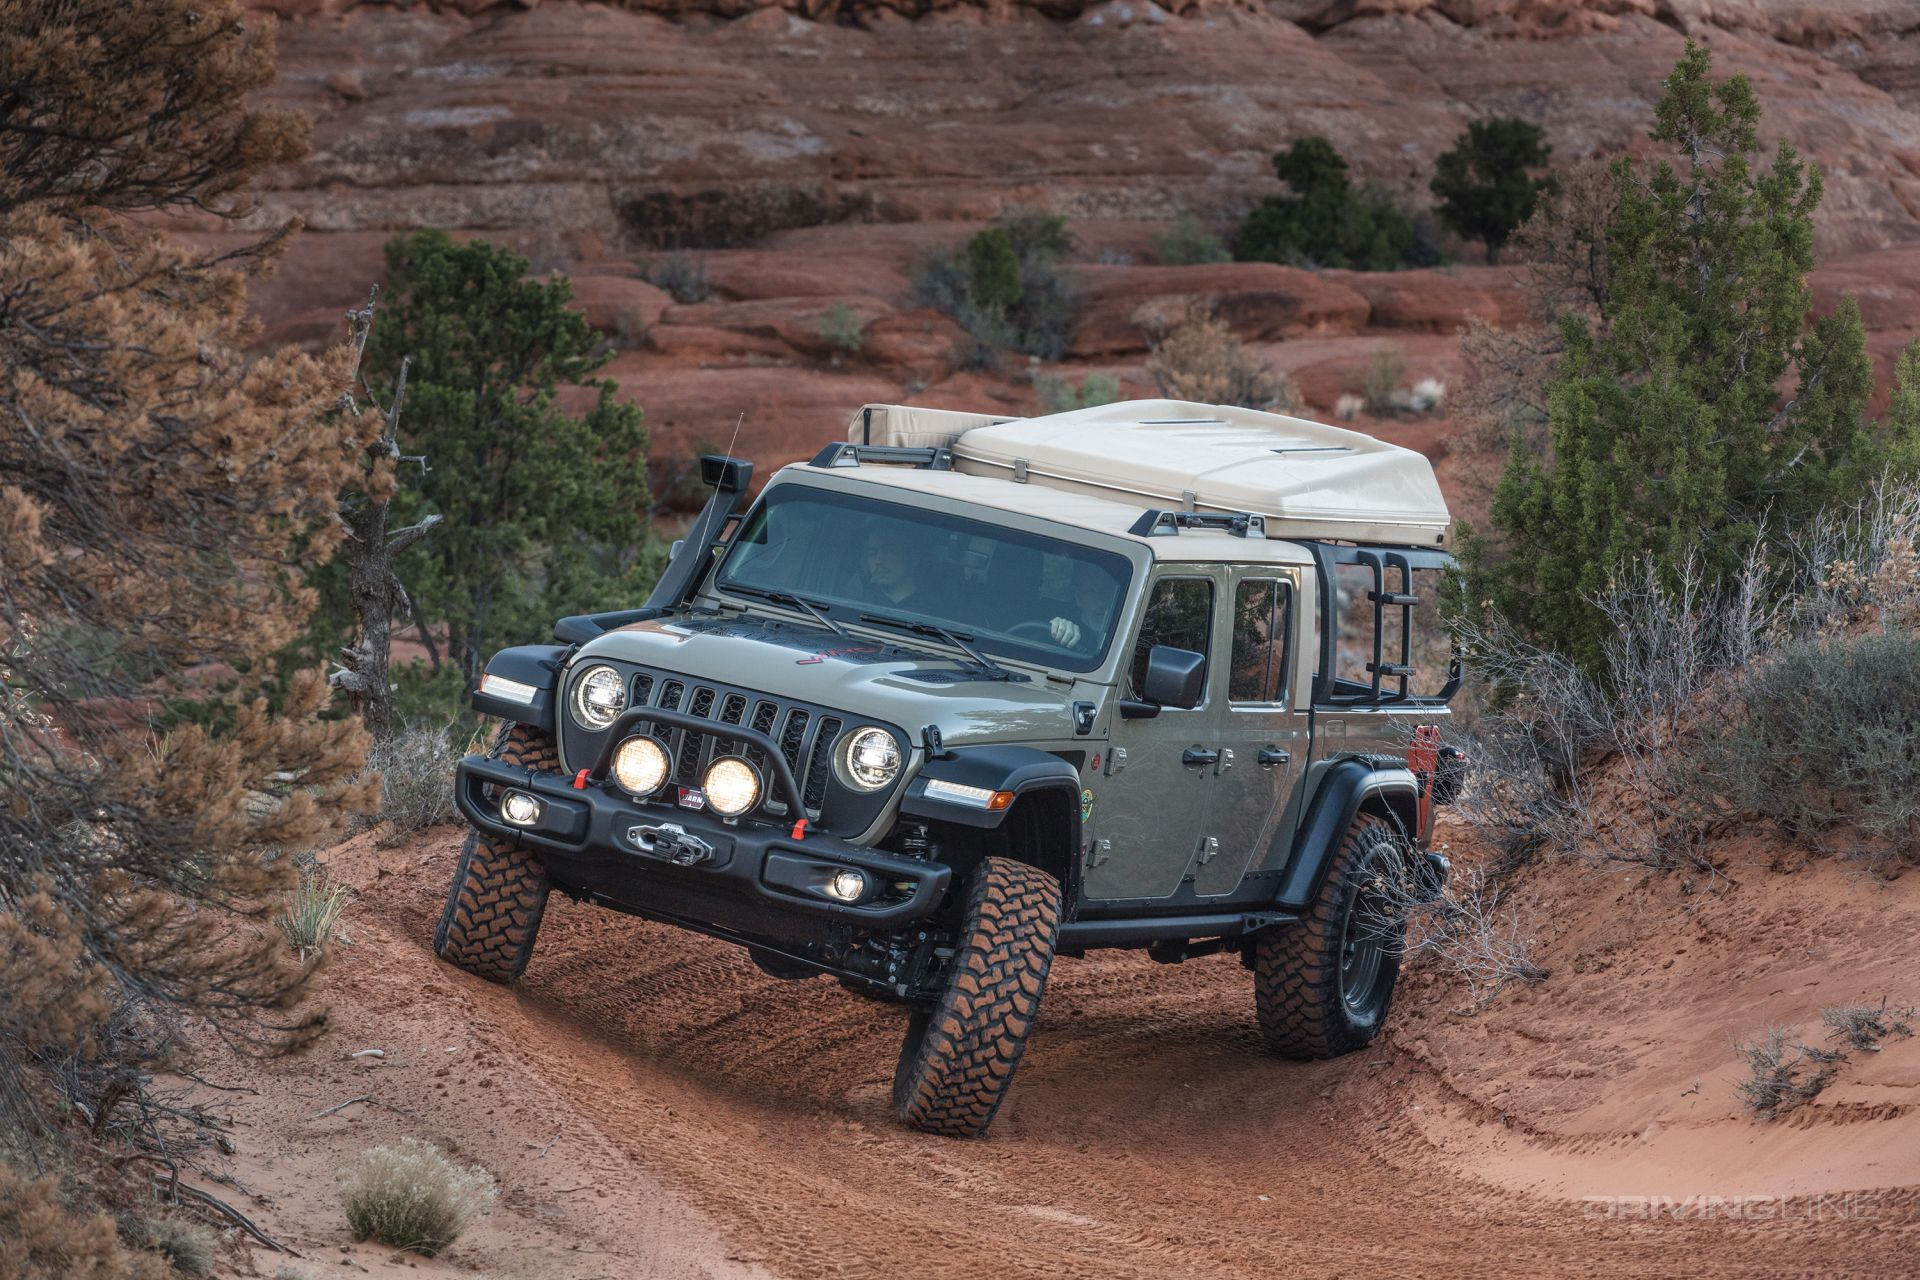 The Ultimate Overland Jeep Gladiator Is Coming Drivingline